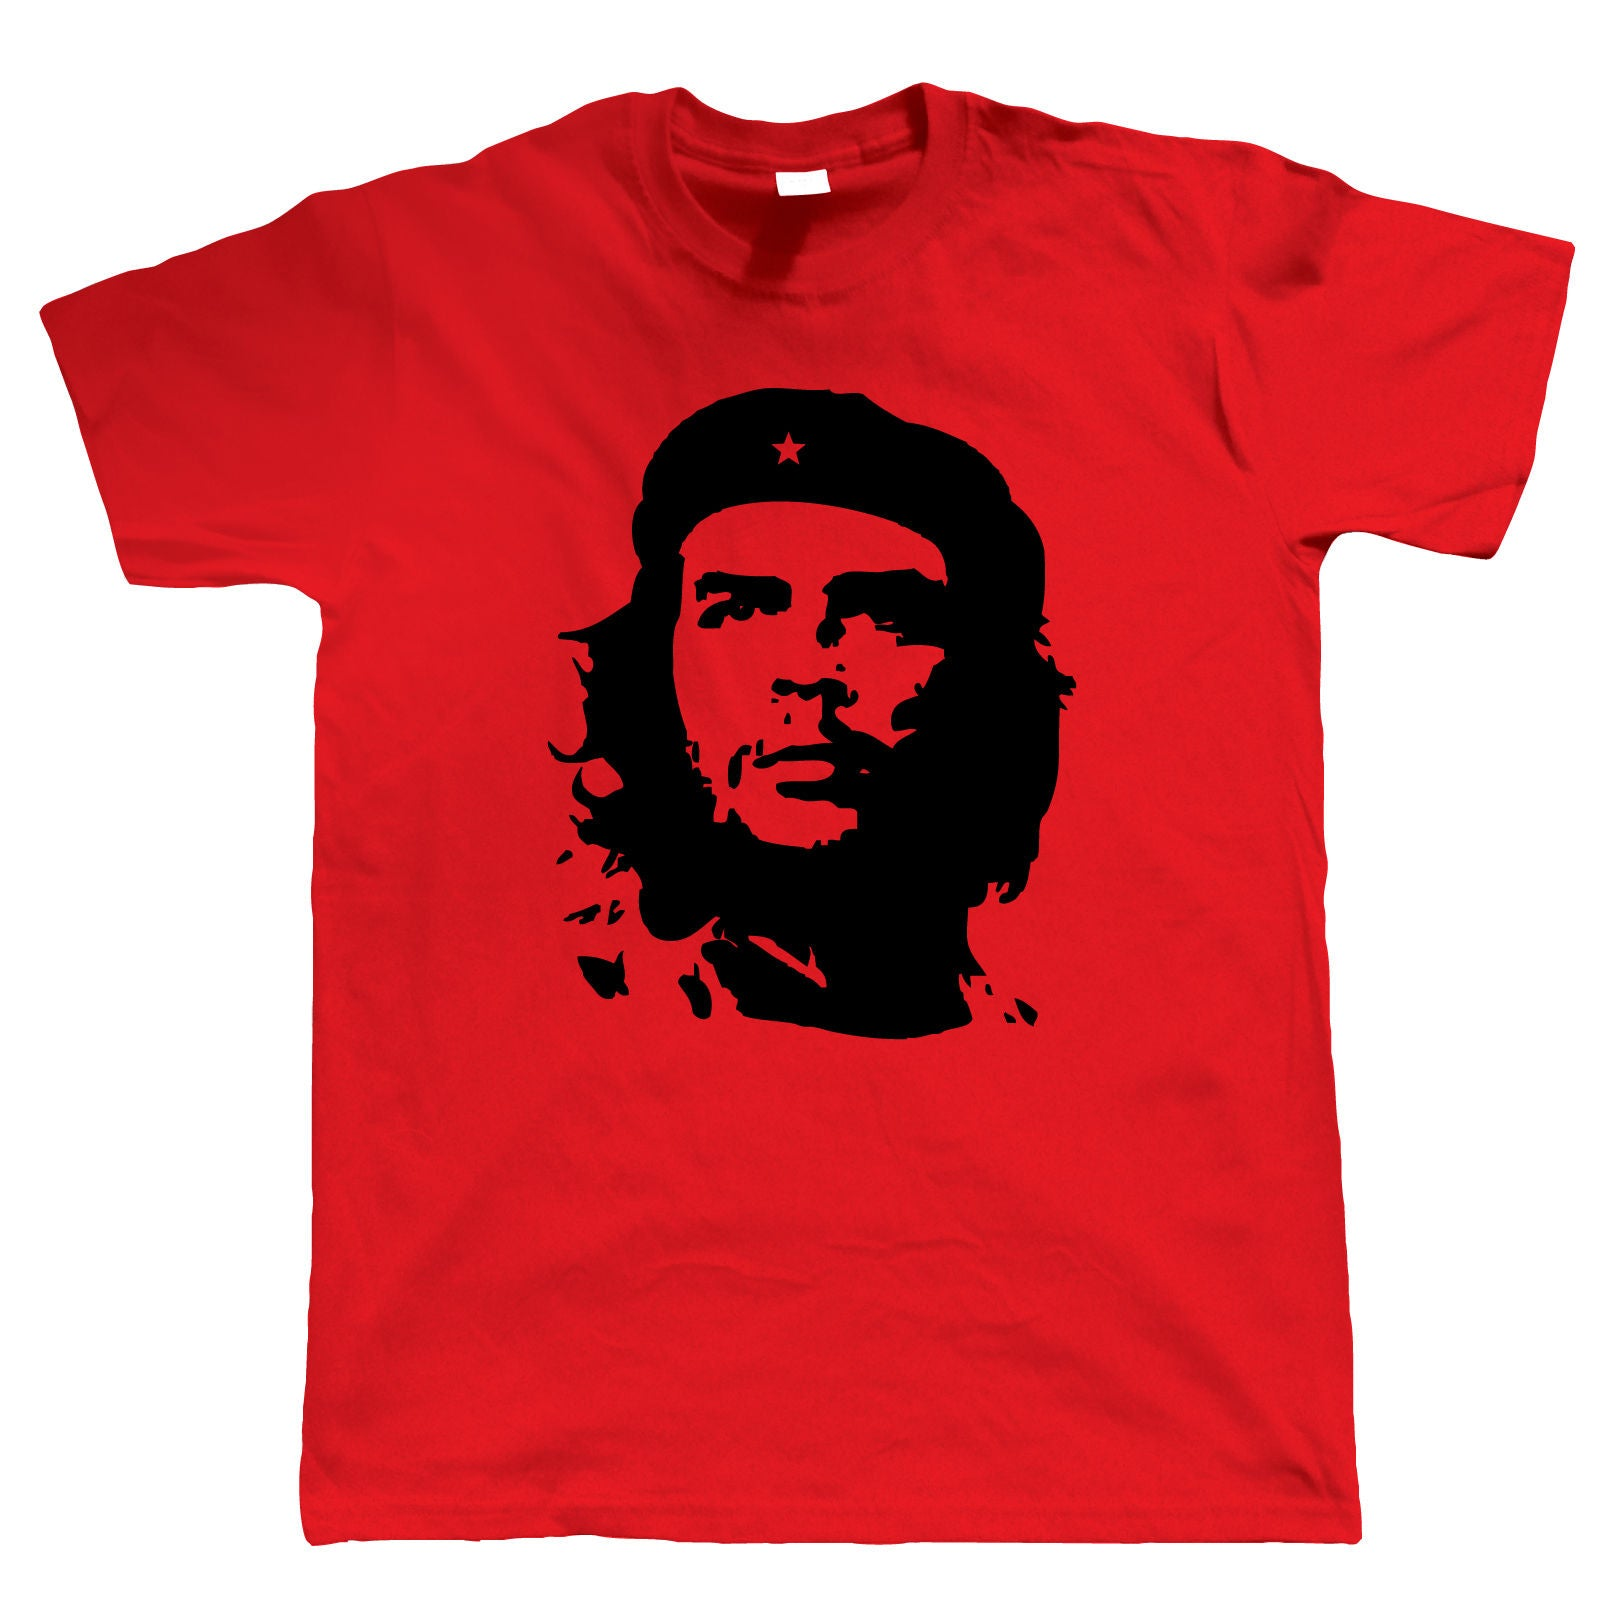 Che Guevara Retro Political Mens T Shirt | Che Guevara Argentine Revolution Cuban Rebellion Icon | Motorcycle Diaries Castro Communist Guerilla Ernesto Mural | Pop Culture Birthday Gift Him Dad